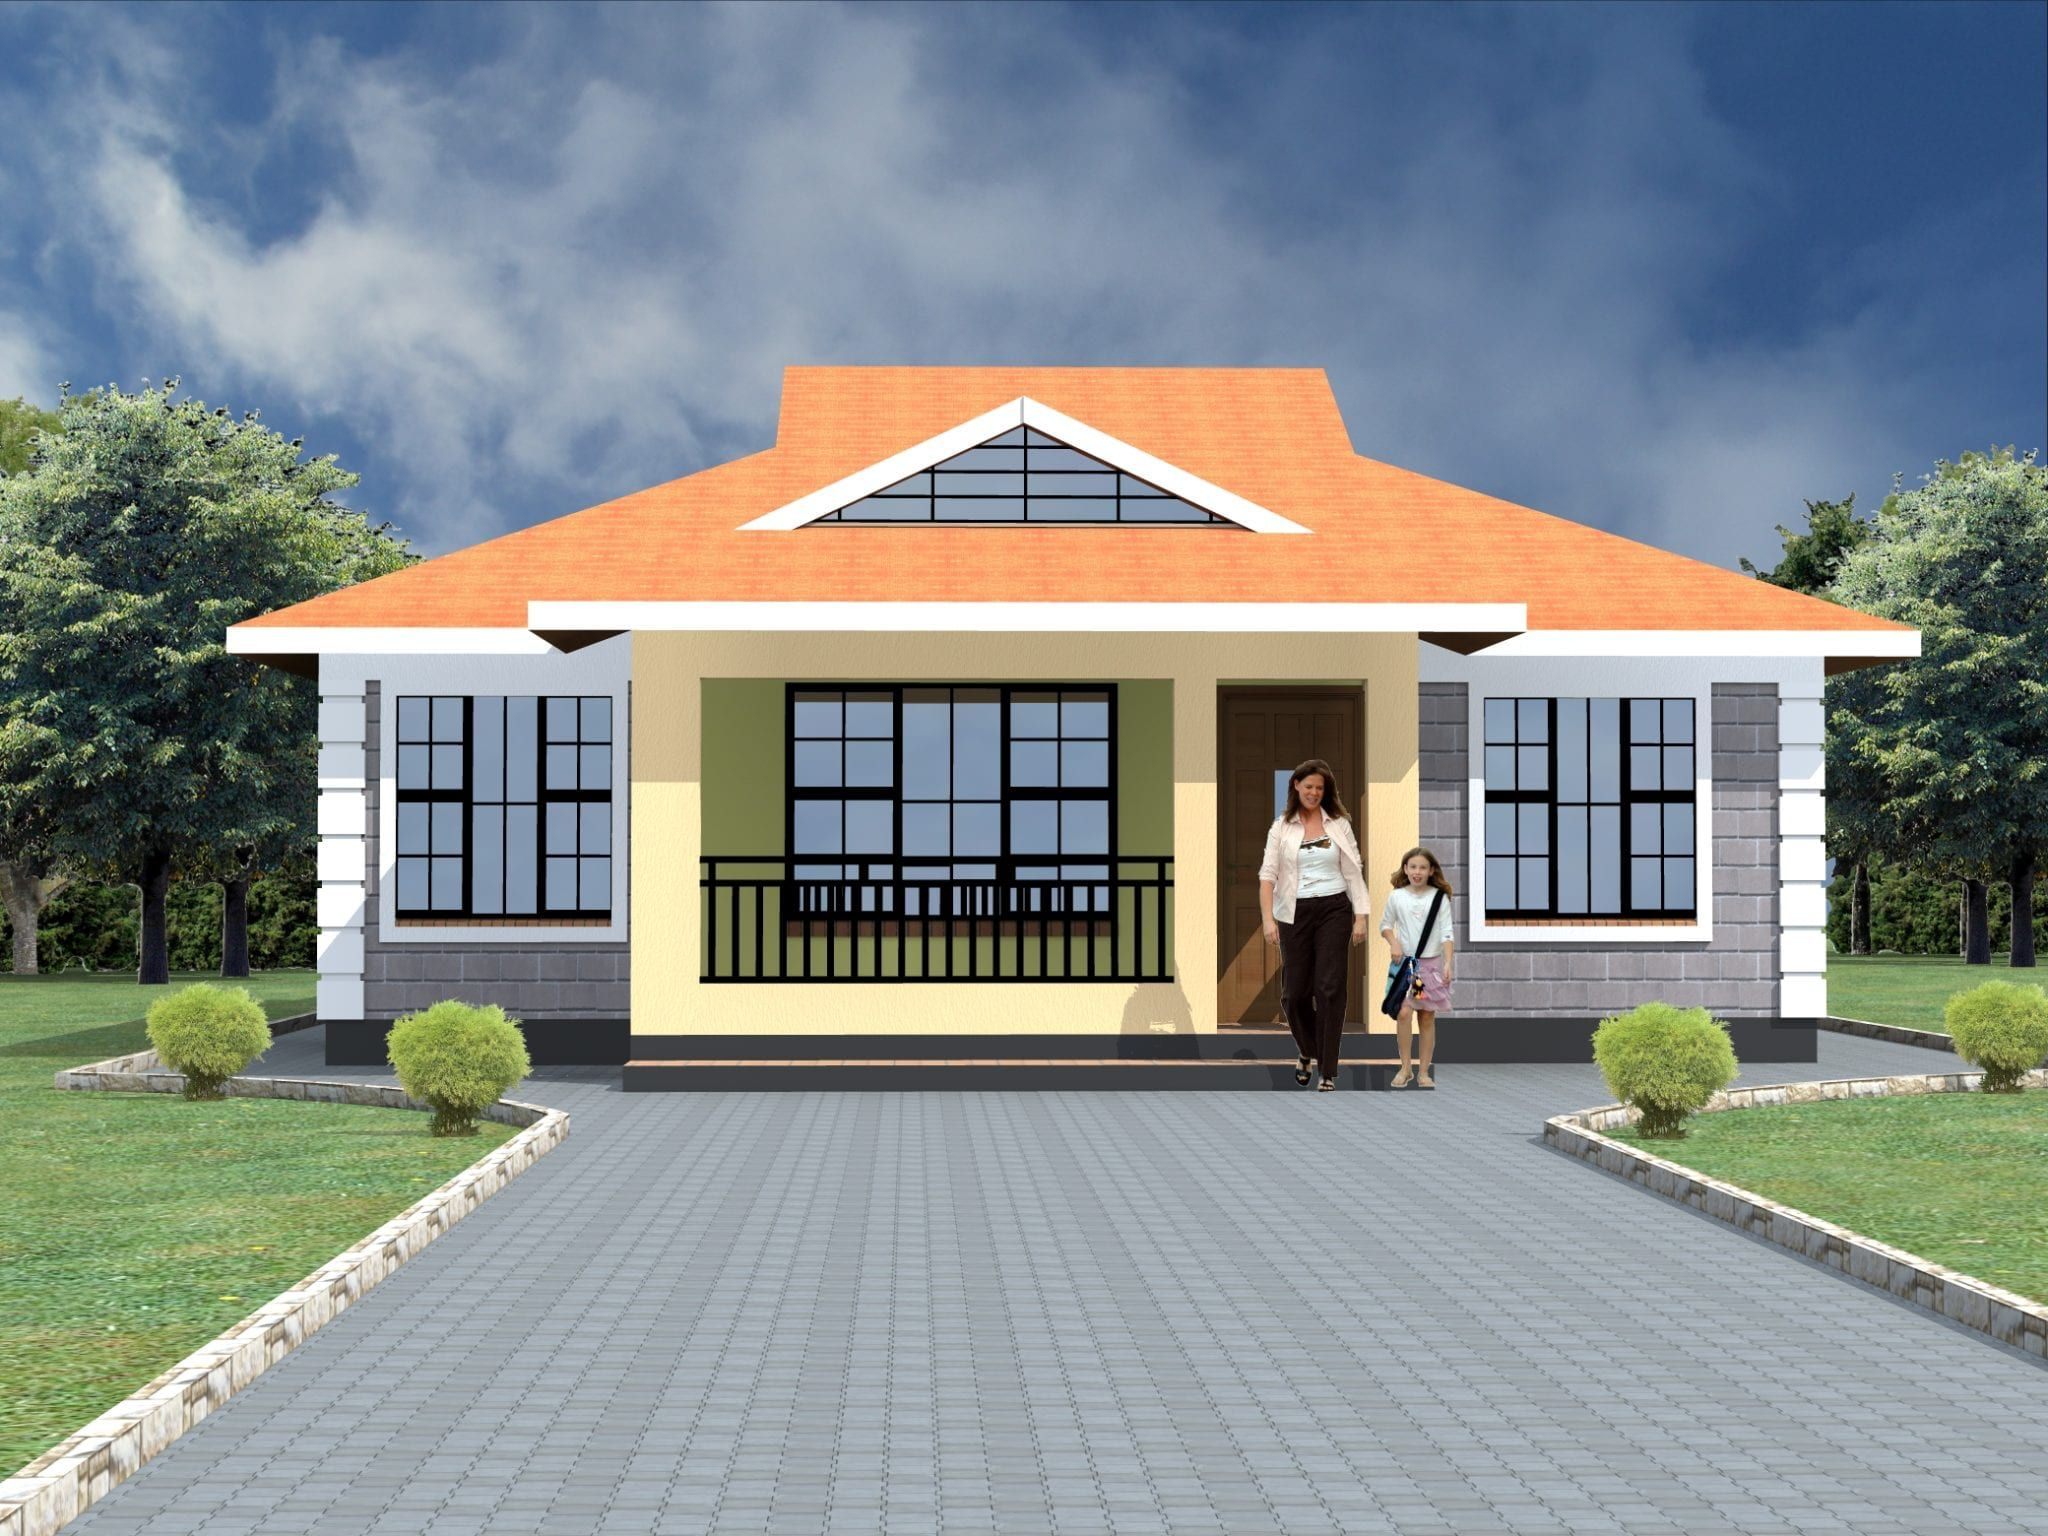 Free Modern 3 Bedroom House Plans Hpd Consult In 2020 Cheap House Plans Modern Bungalow House Plans Modern Bungalow House